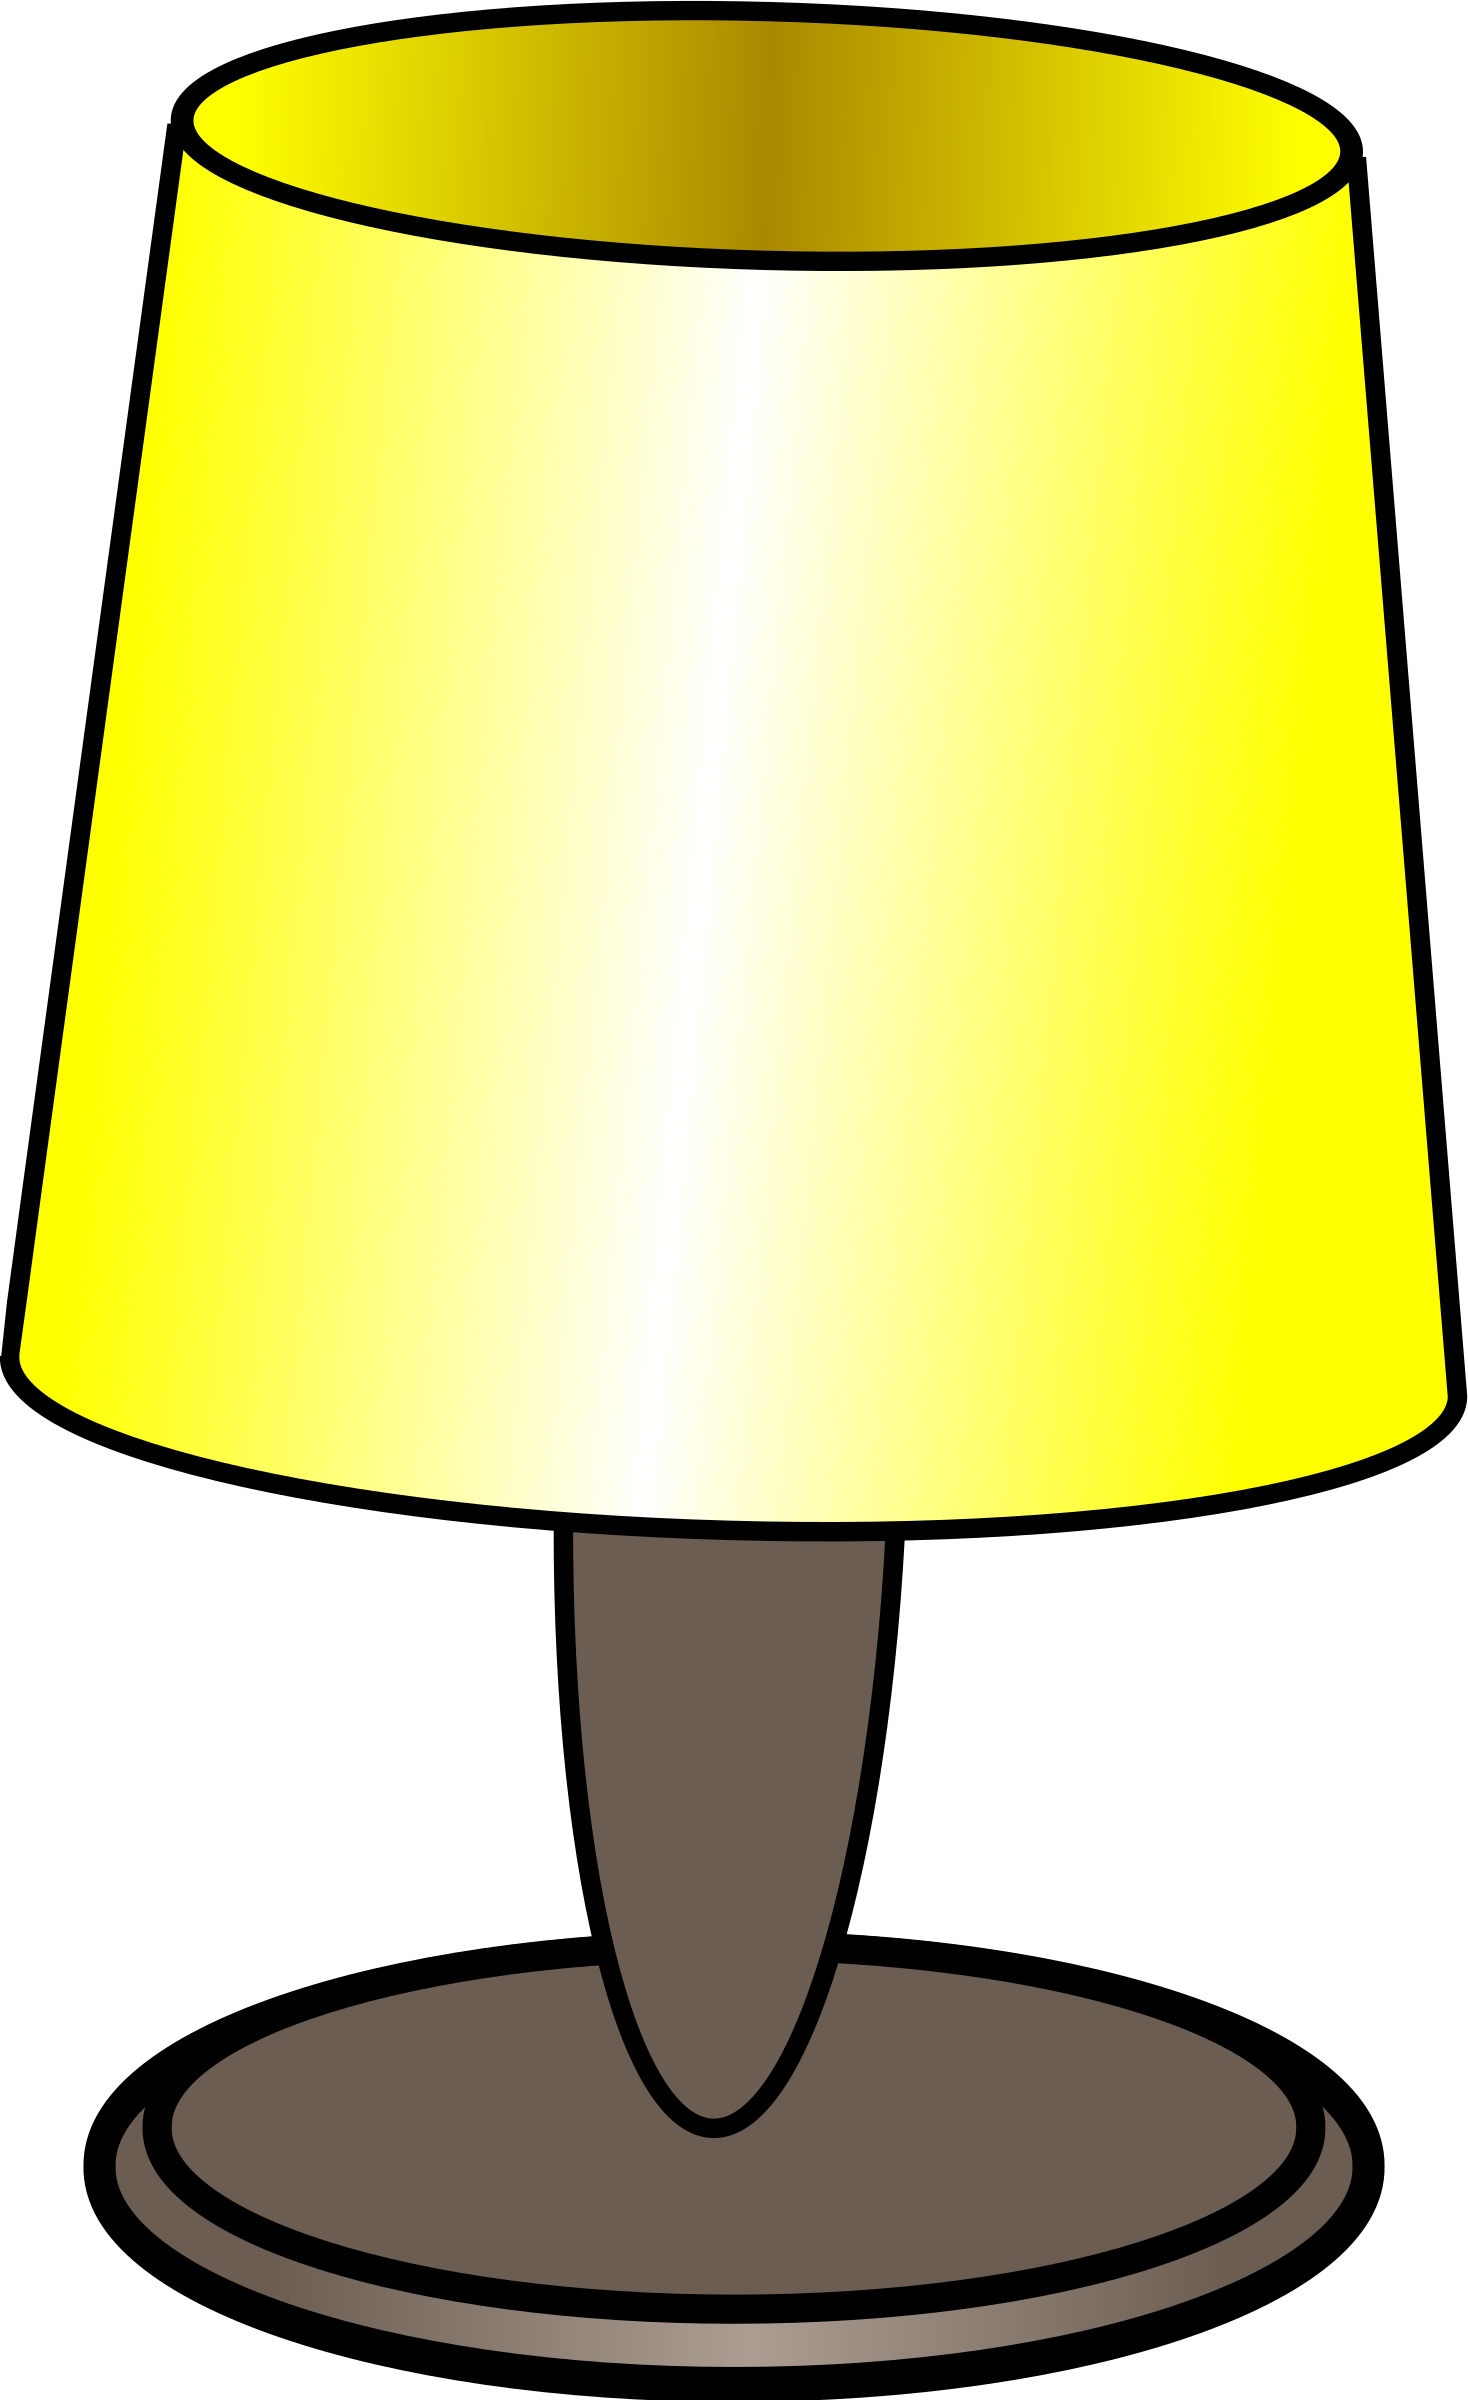 Lights clipart uses light. Table lamp big image